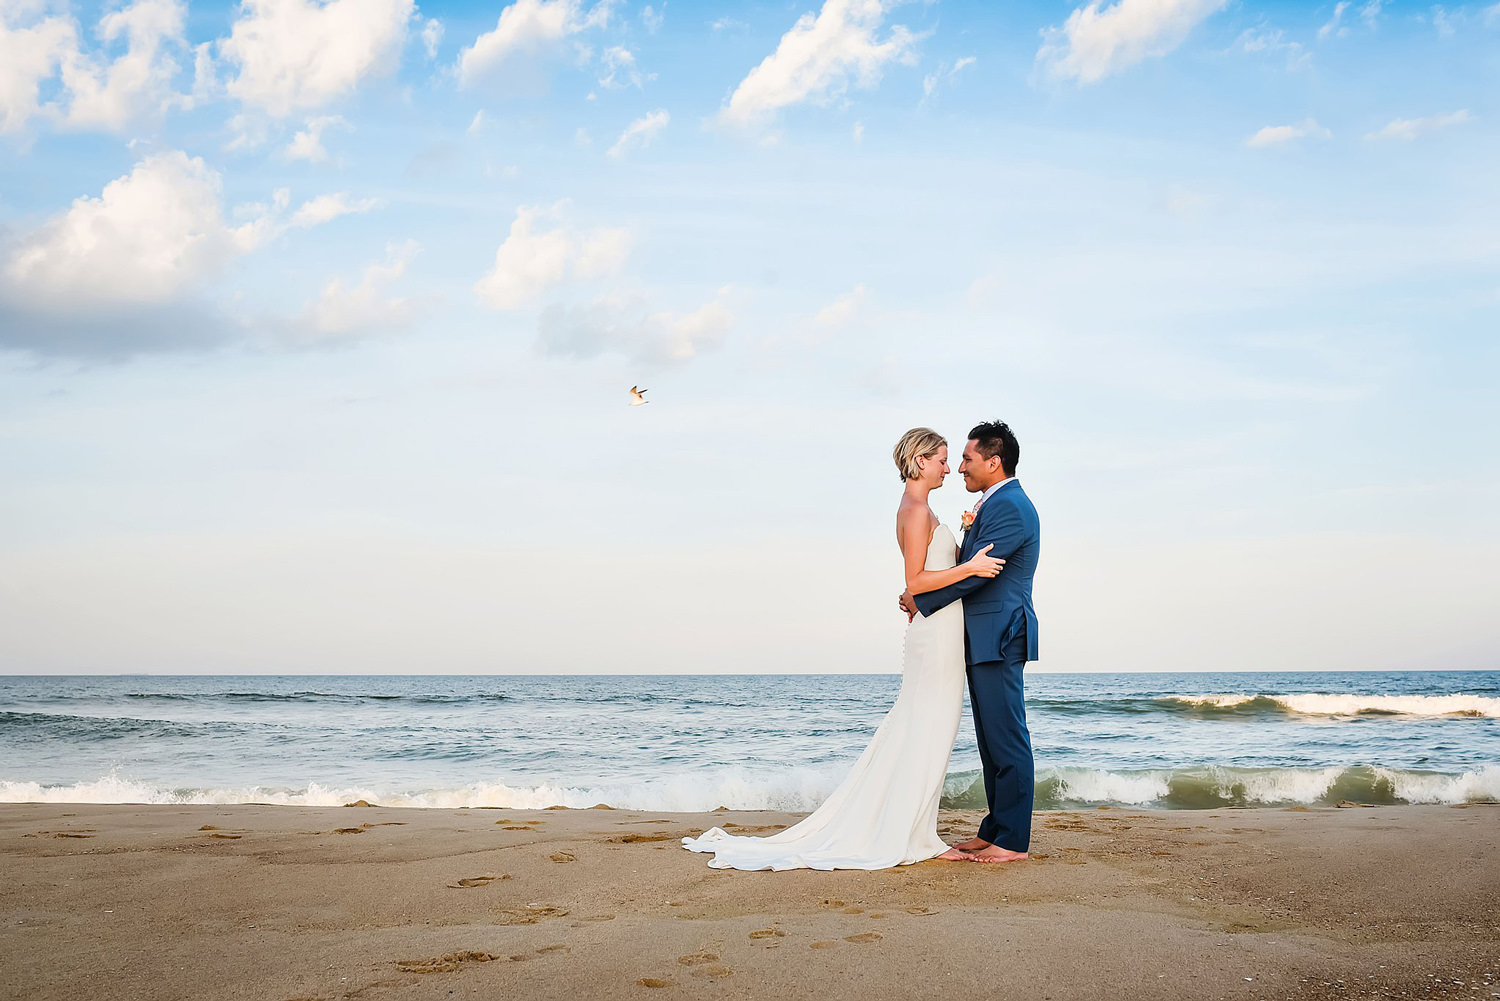 beach-wedding-photo-of-bride-and-groom-melissa-bliss-photography-sandbridge-VA.jpg